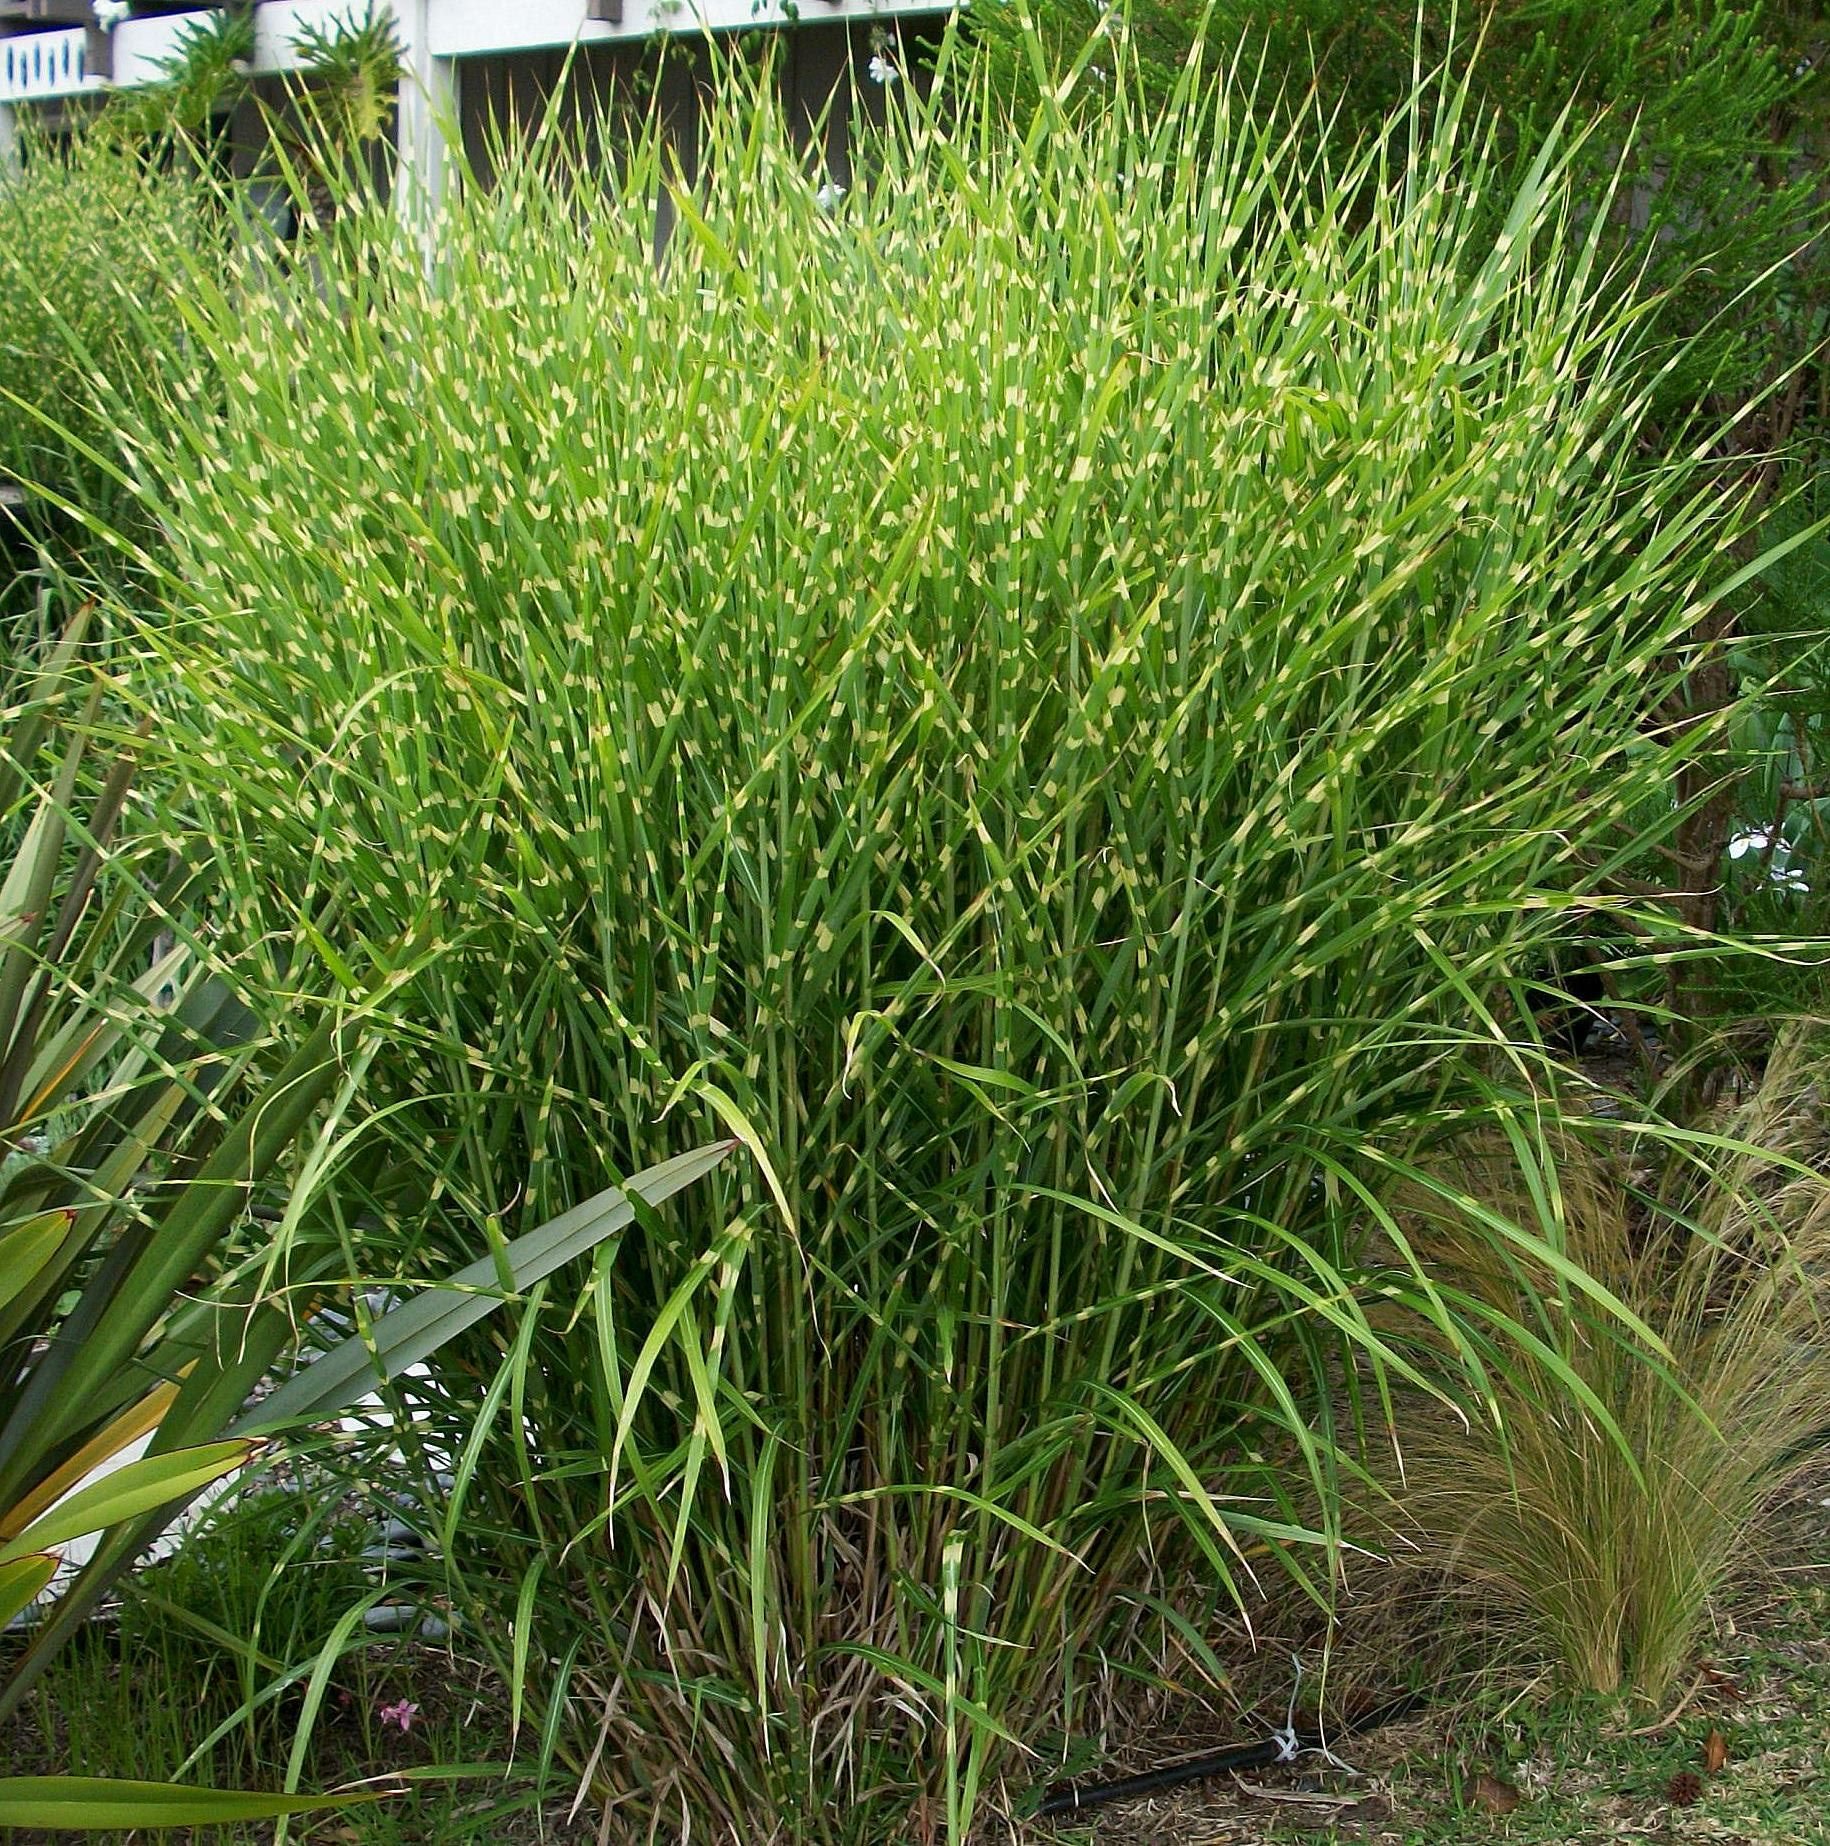 Elegant Ornamental Grasses To Grow In Any Garden Ornamental Grass Landscape Grasses Landscaping Ornamental Grasses